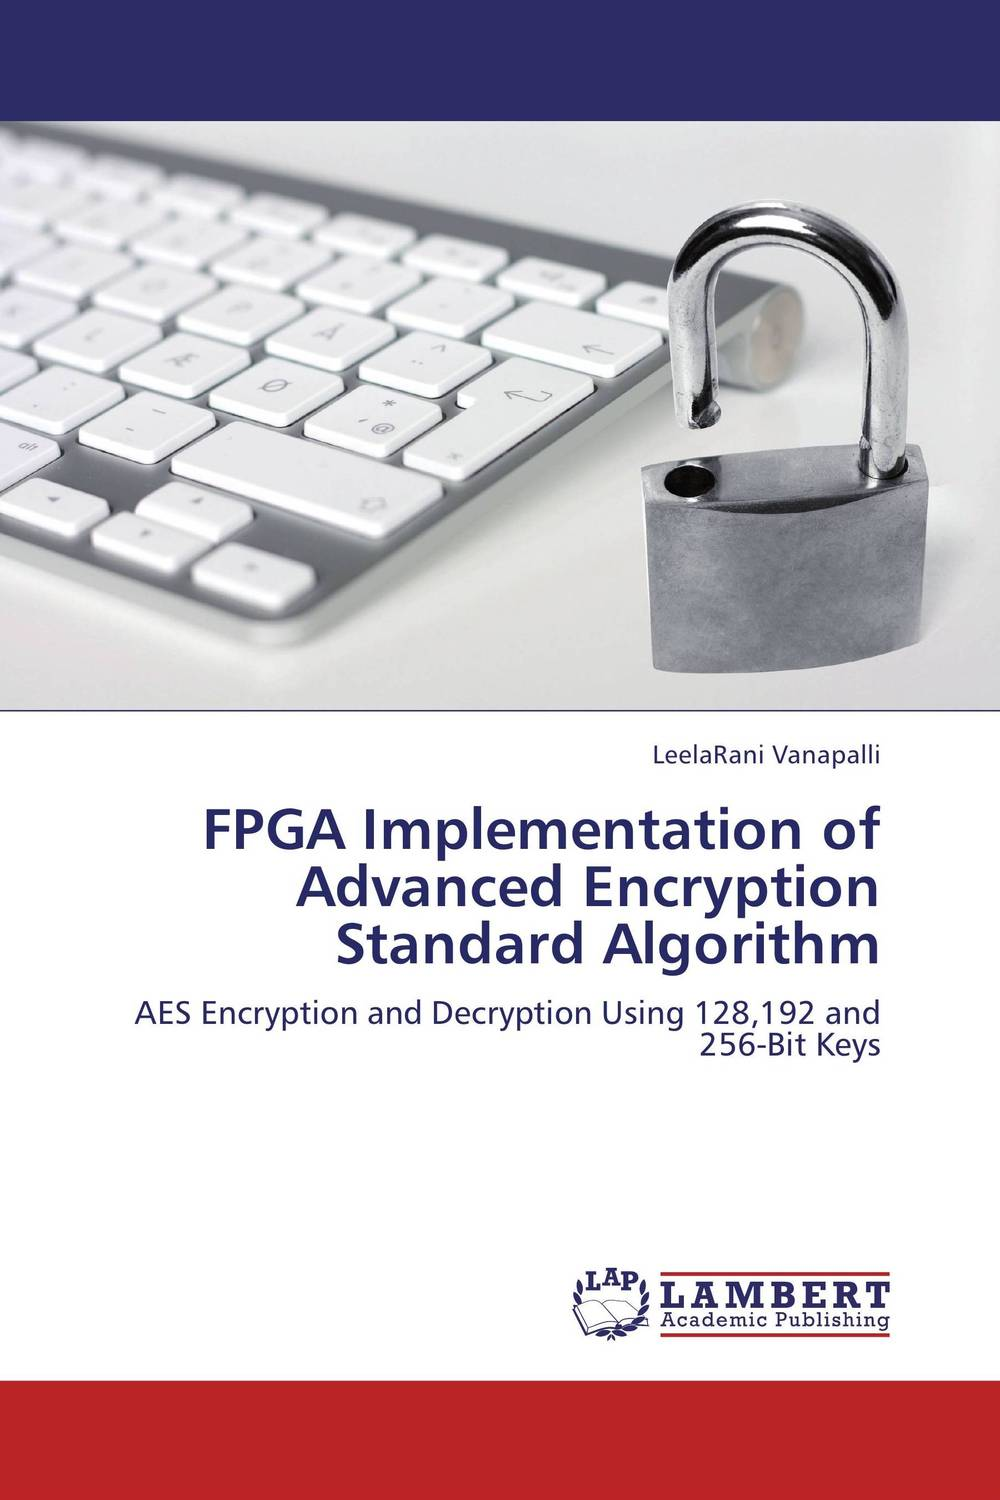 FPGA Implementation of Advanced Encryption Standard Algorithm belousov a security features of banknotes and other documents methods of authentication manual денежные билеты бланки ценных бумаг и документов